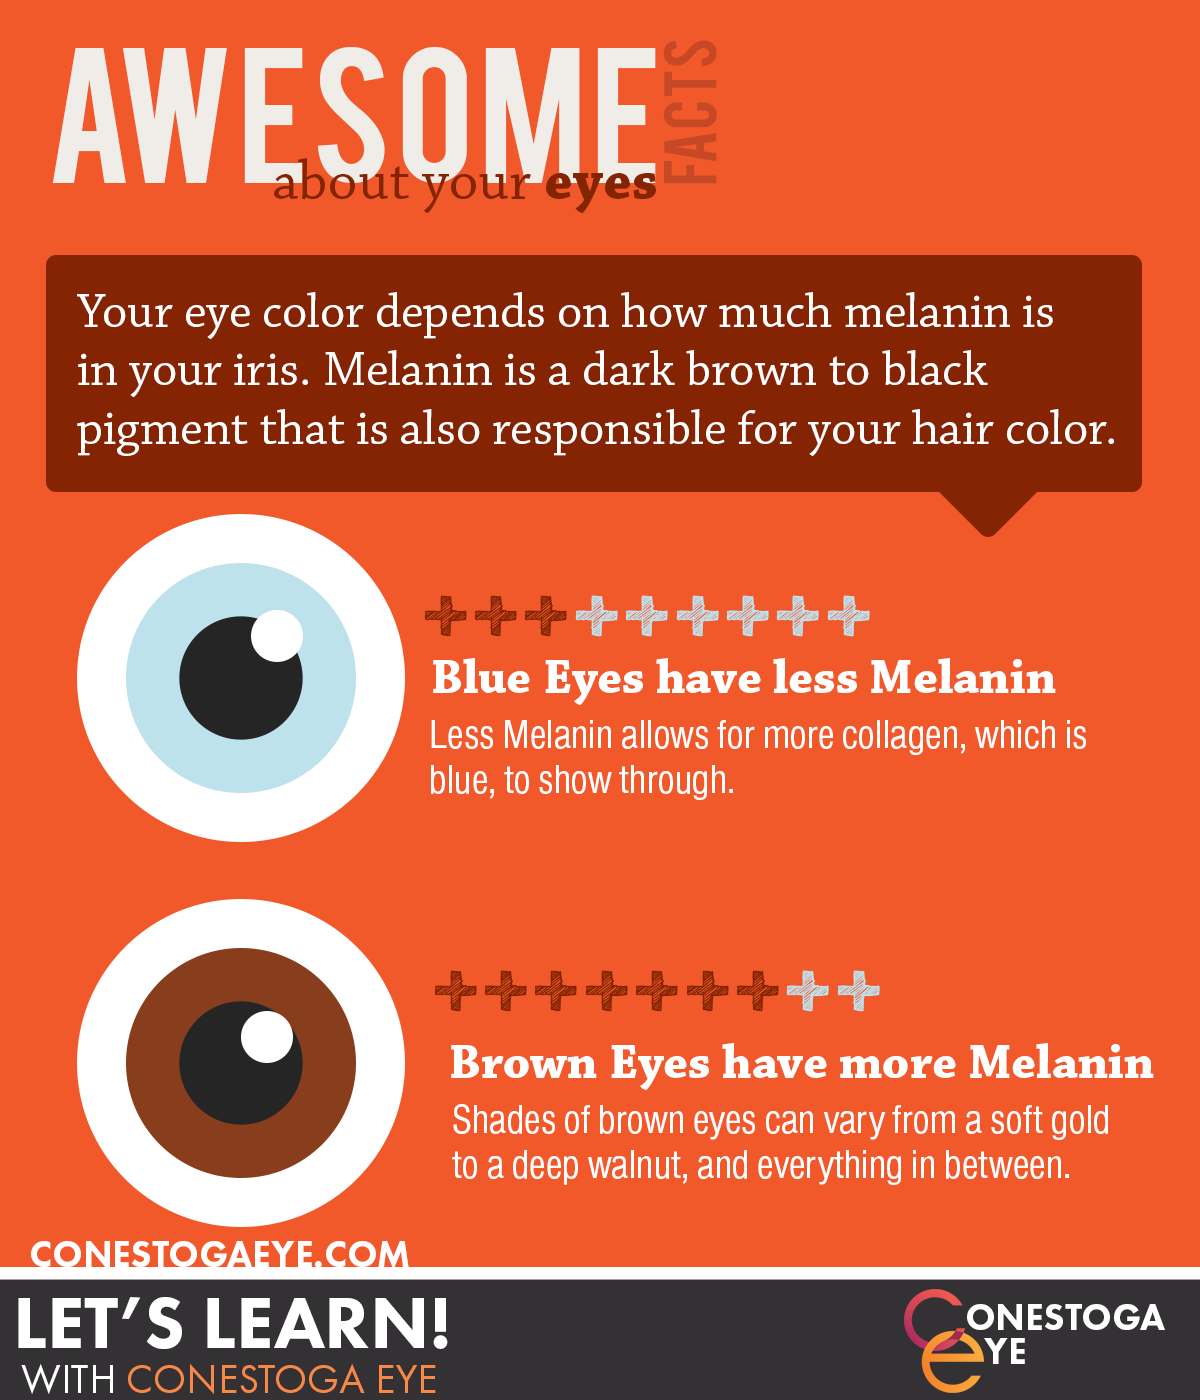 AwesomeFacts1